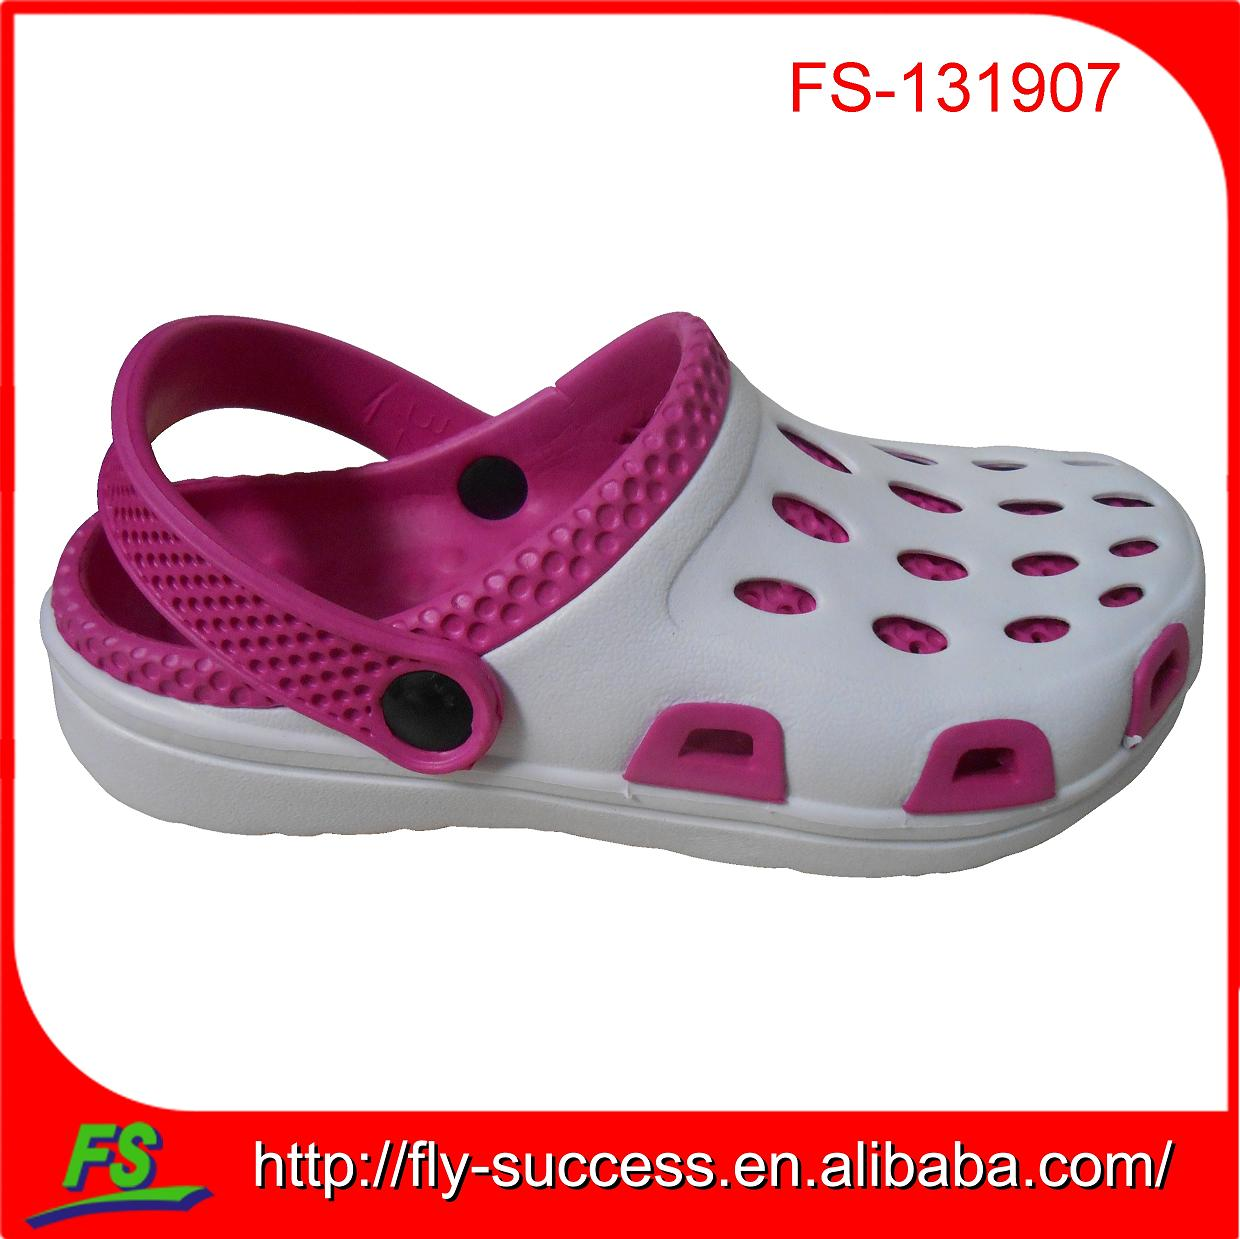 hottest design holey eva shoes,kids summer shoe,garden shoe